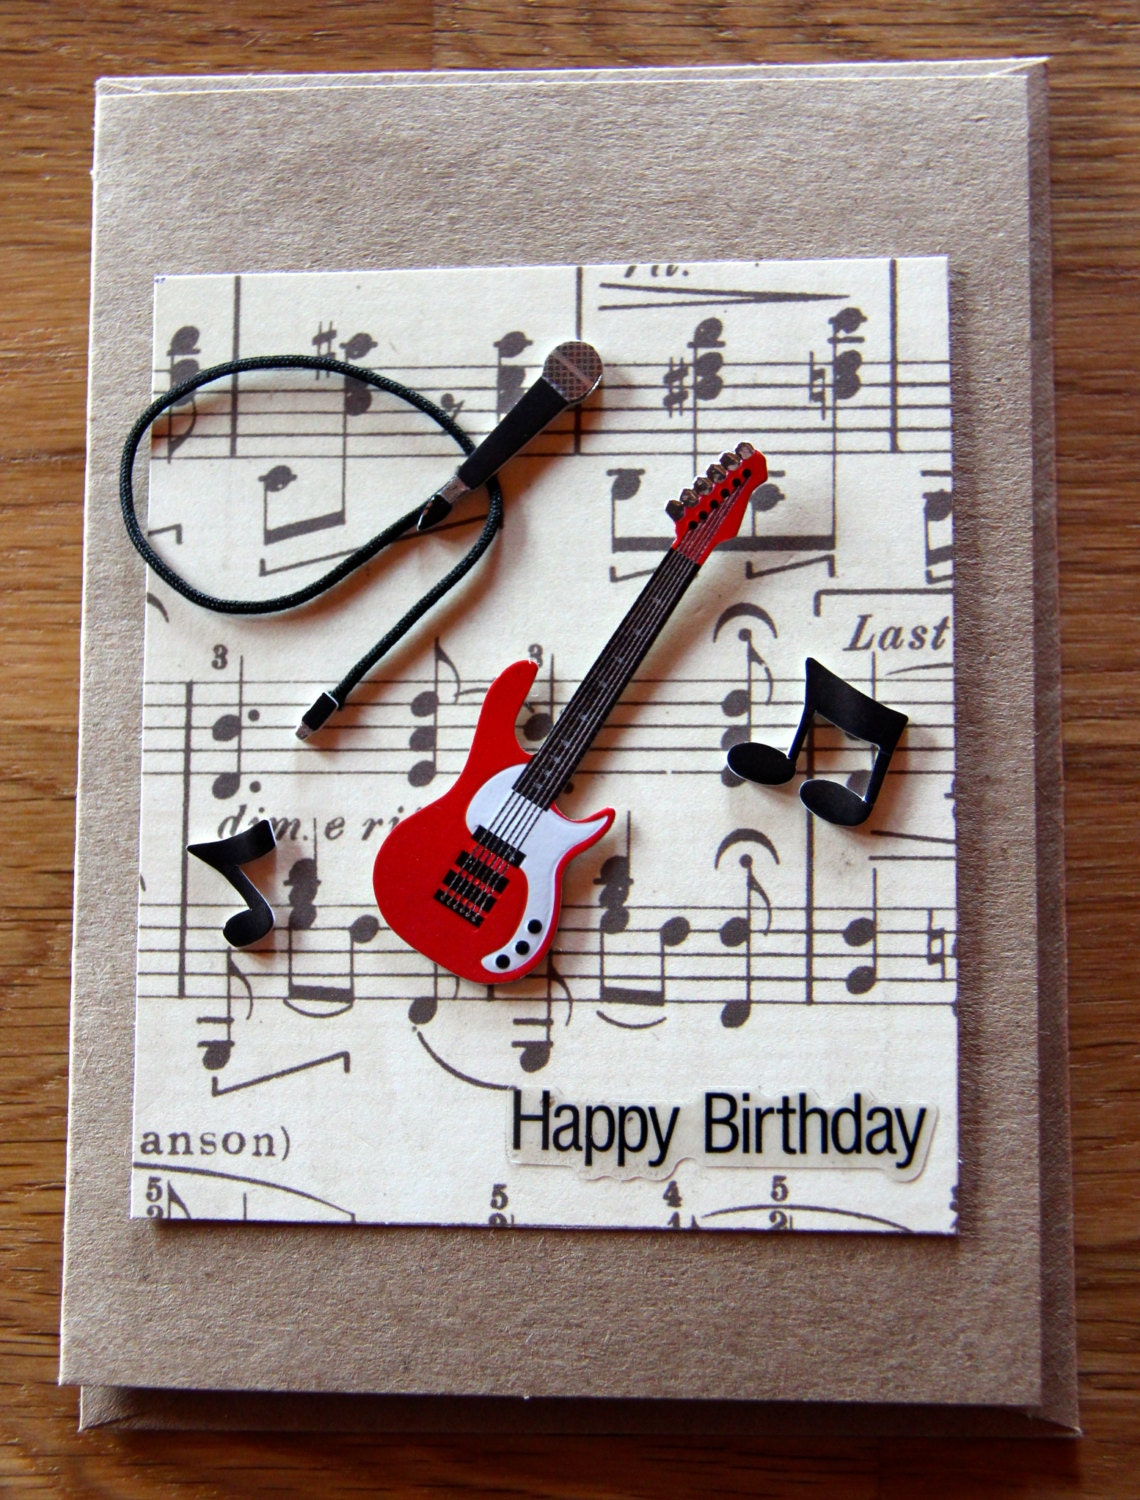 Birthday Cards Play Music wedding photography business cards – Birthday Cards Play Music